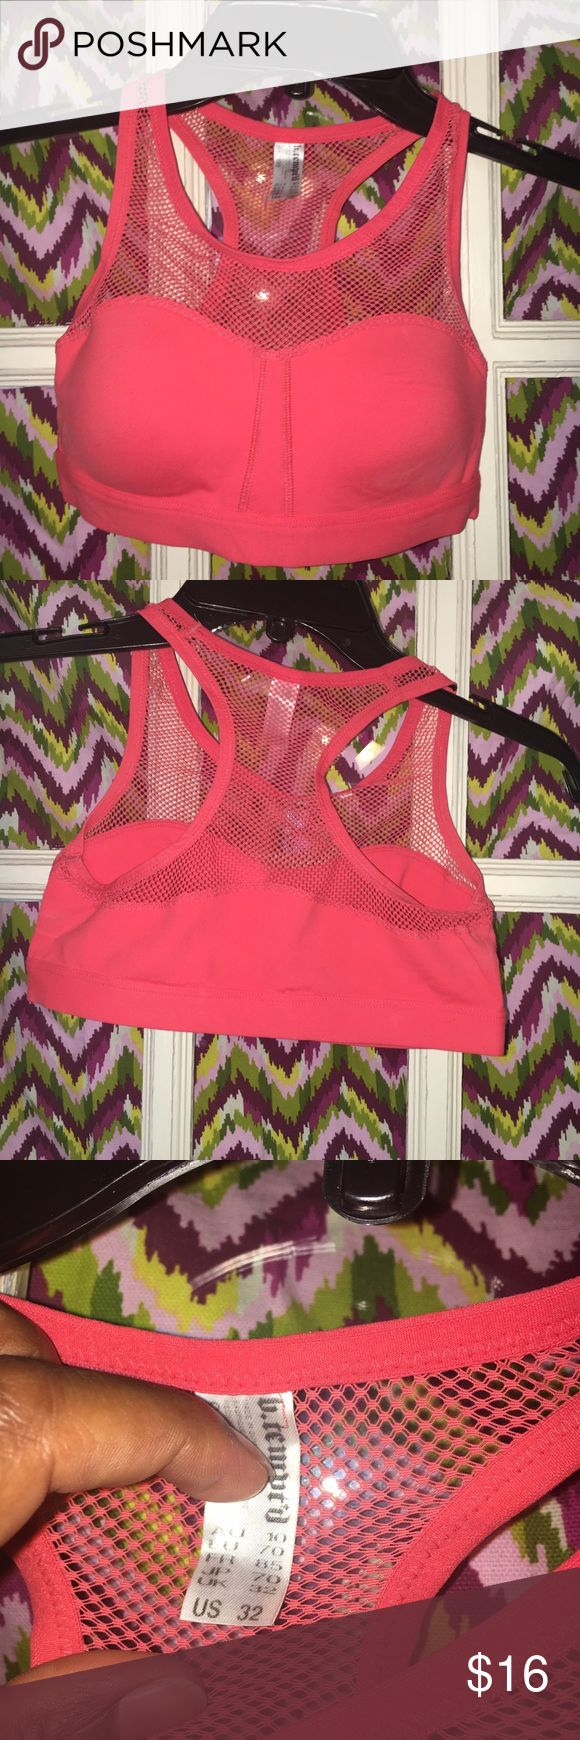 B.Tempt'd by Wacoal Mesh Bra Orange B.tempt'd by Wacoal mesh bra. Size 32 fits a 32A, 32B, or 32C bra size. Great for anytime you want to show off your goods. Wear it with a low cut top, out dancing or to a low impact workout. VGUC Wacoal Intimates & Sleepwear Bras